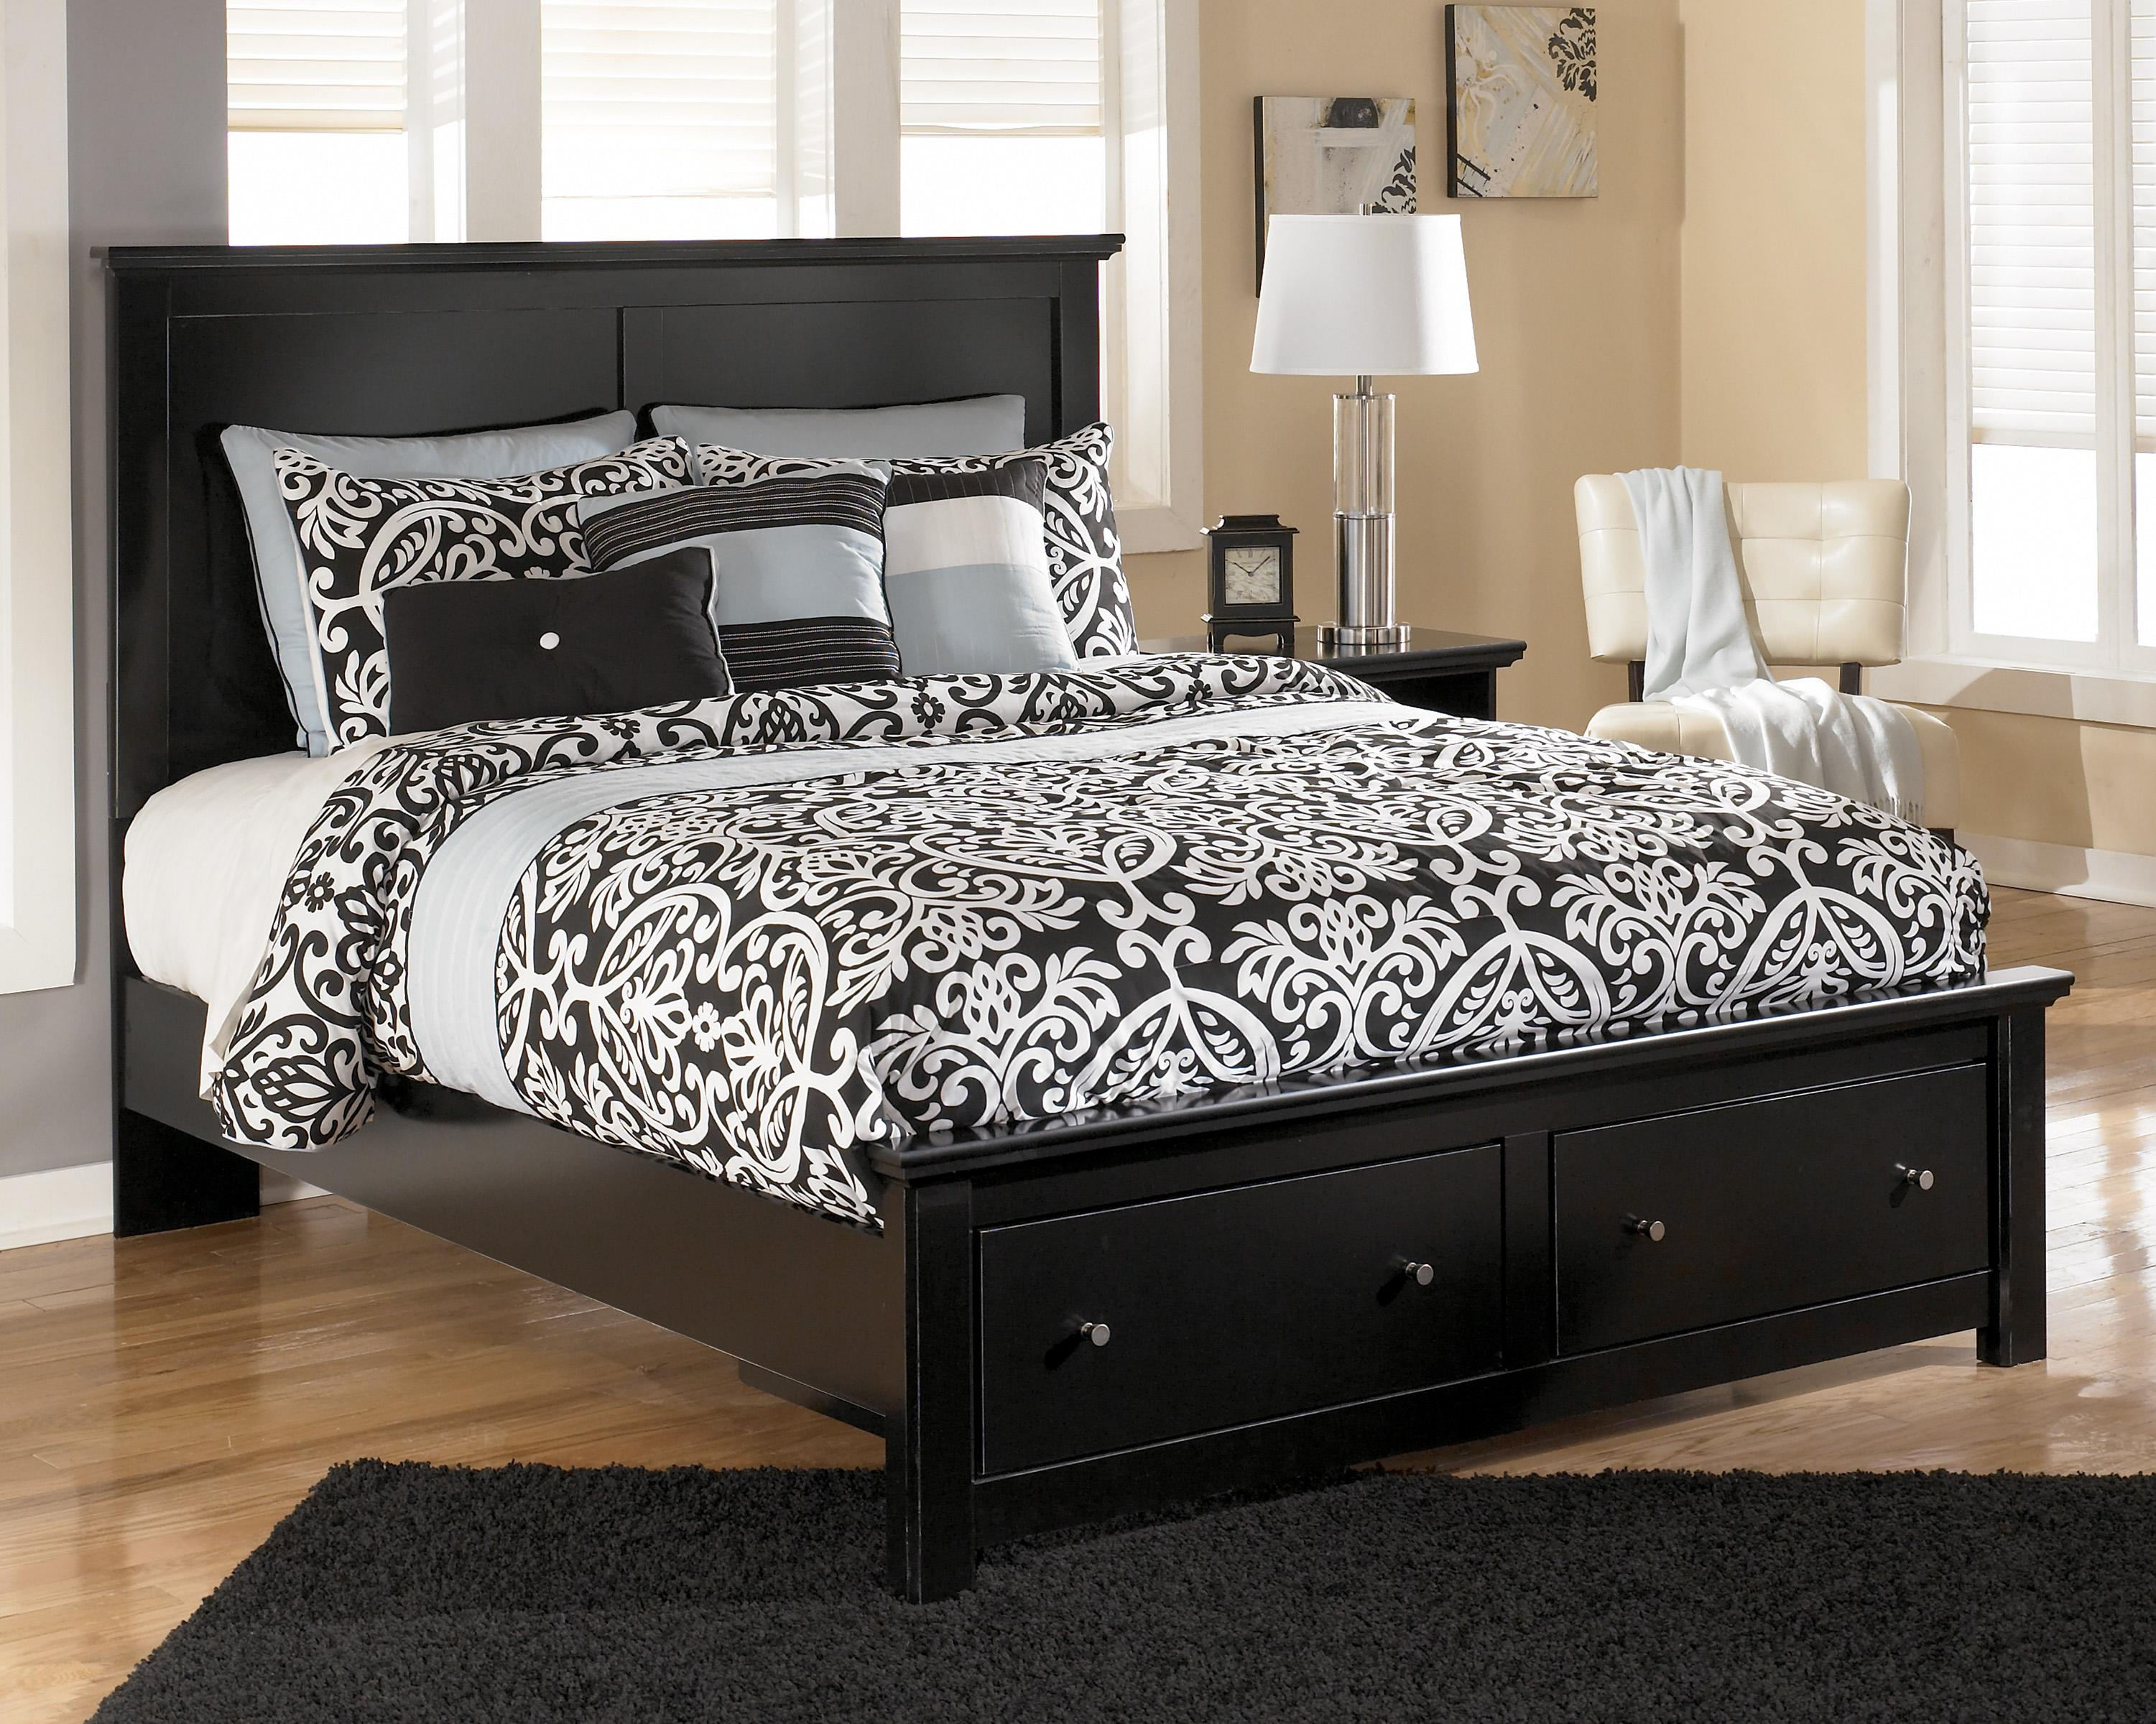 Queen Size Beds For Sale Signature Design By Ashley Maribel Queen Storage Bed With